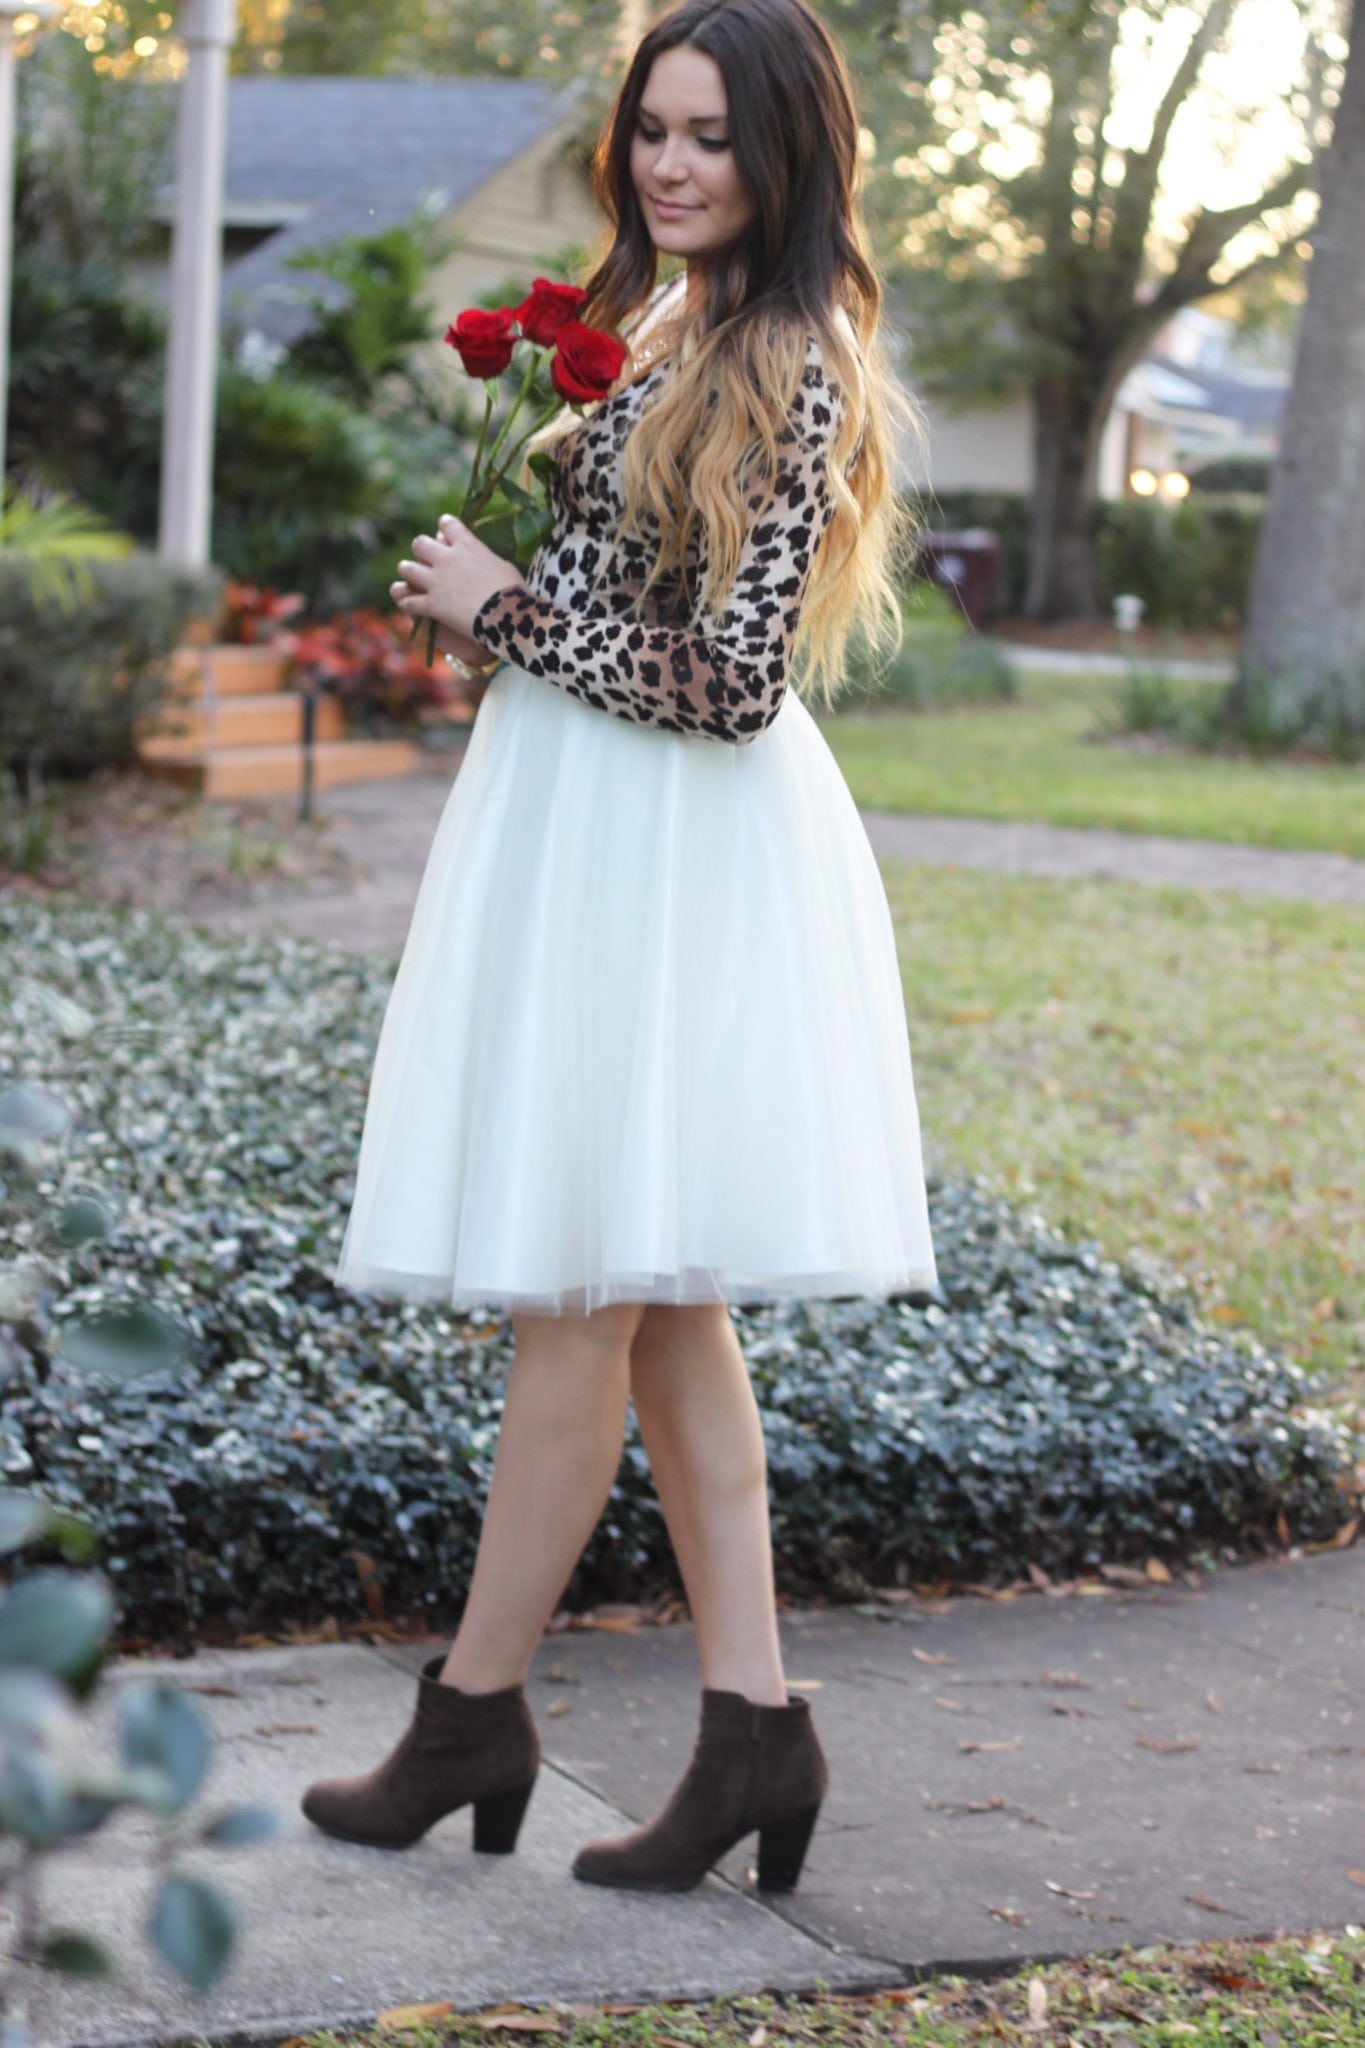 How to style a tulle skirt | Mash Elle beauty blogger | rose | balayage hair | leopard print outfit